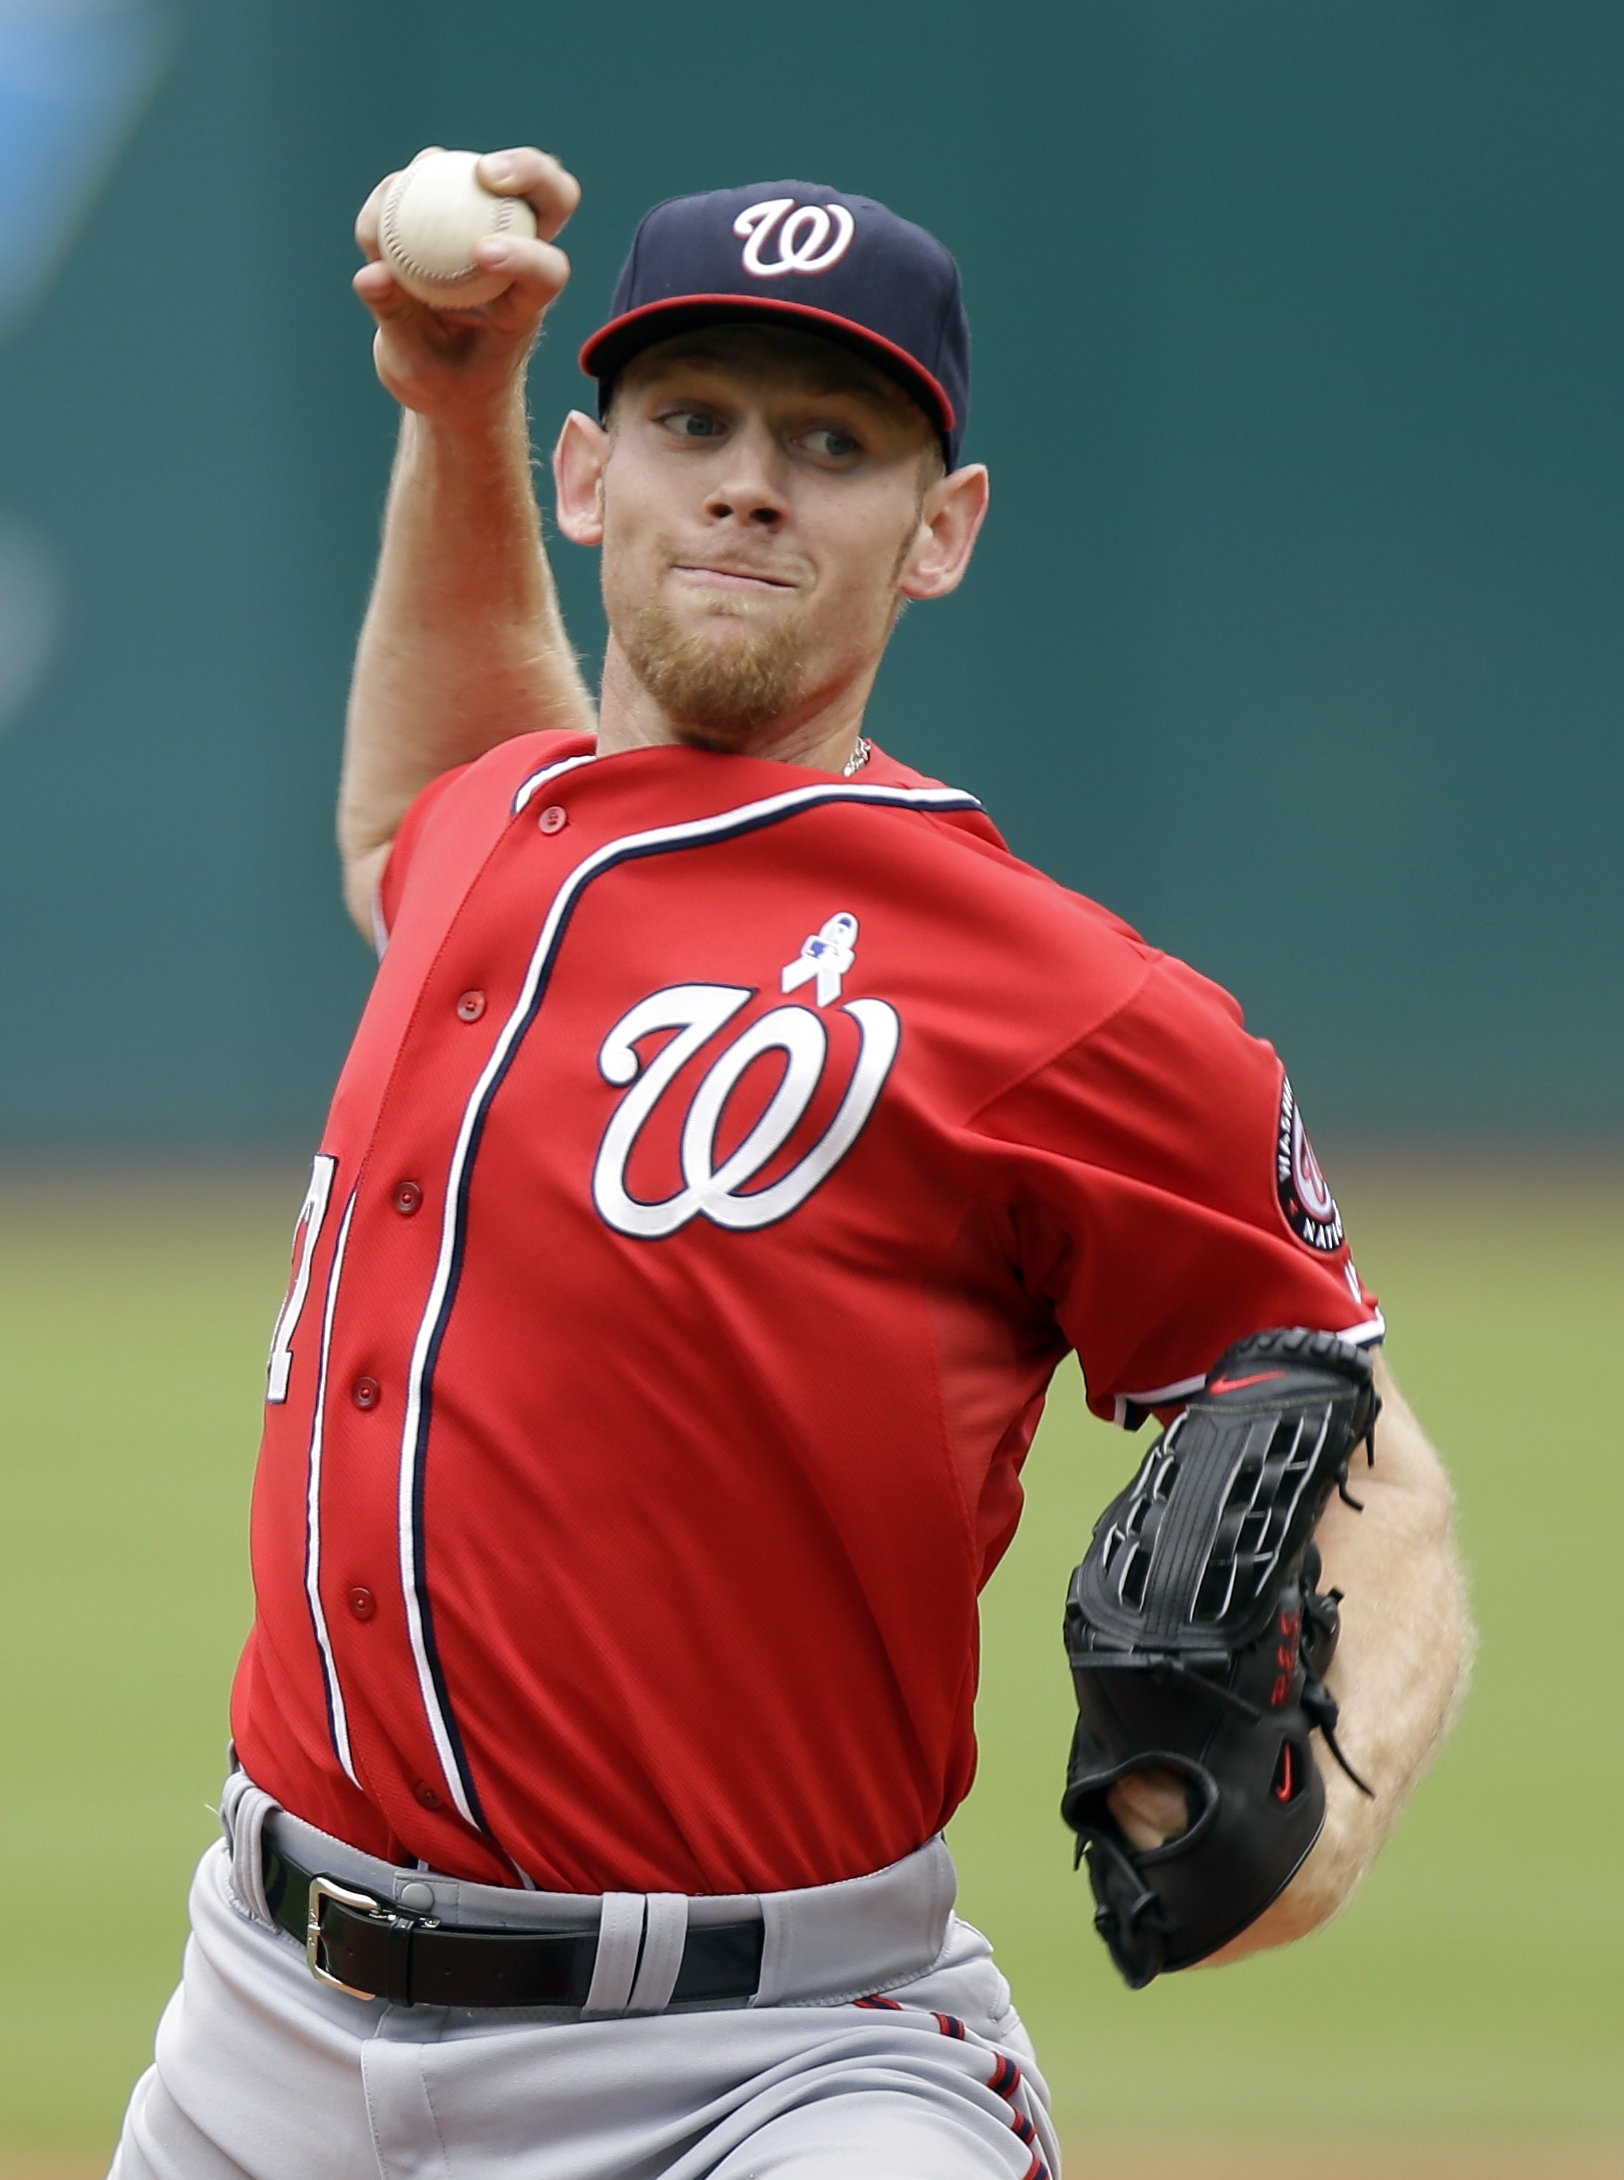 The Nationals shut down Stephen Strasburg after 159∑ innings last year.